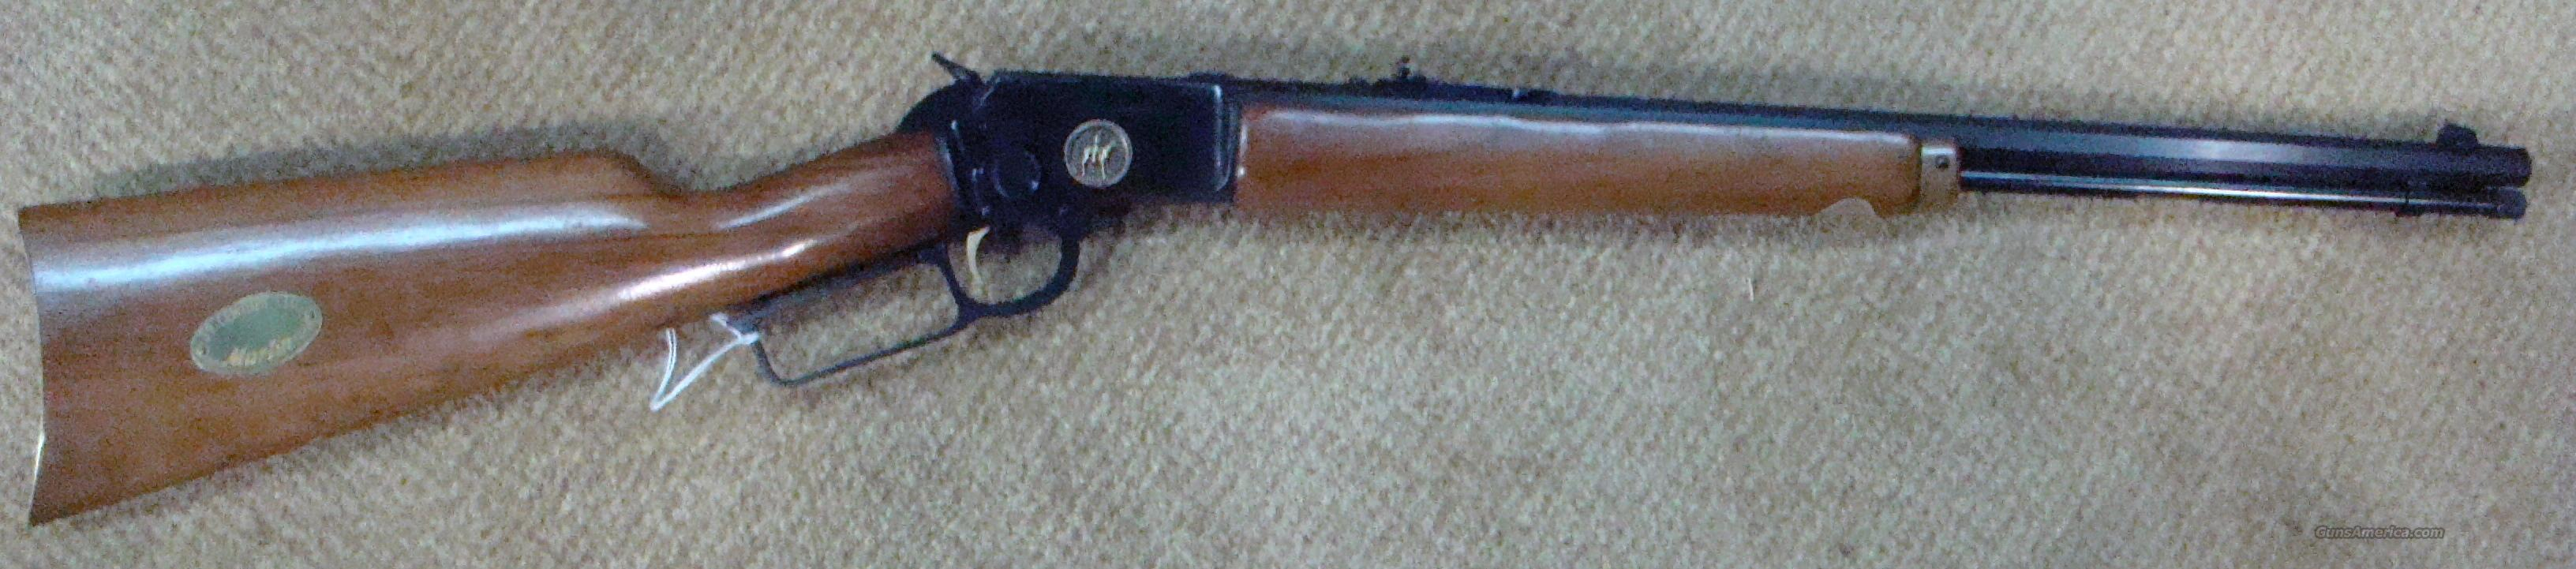 Marlin 39 century limited edition .22 long rifle  Guns > Rifles > Marlin Rifles > Modern > Lever Action